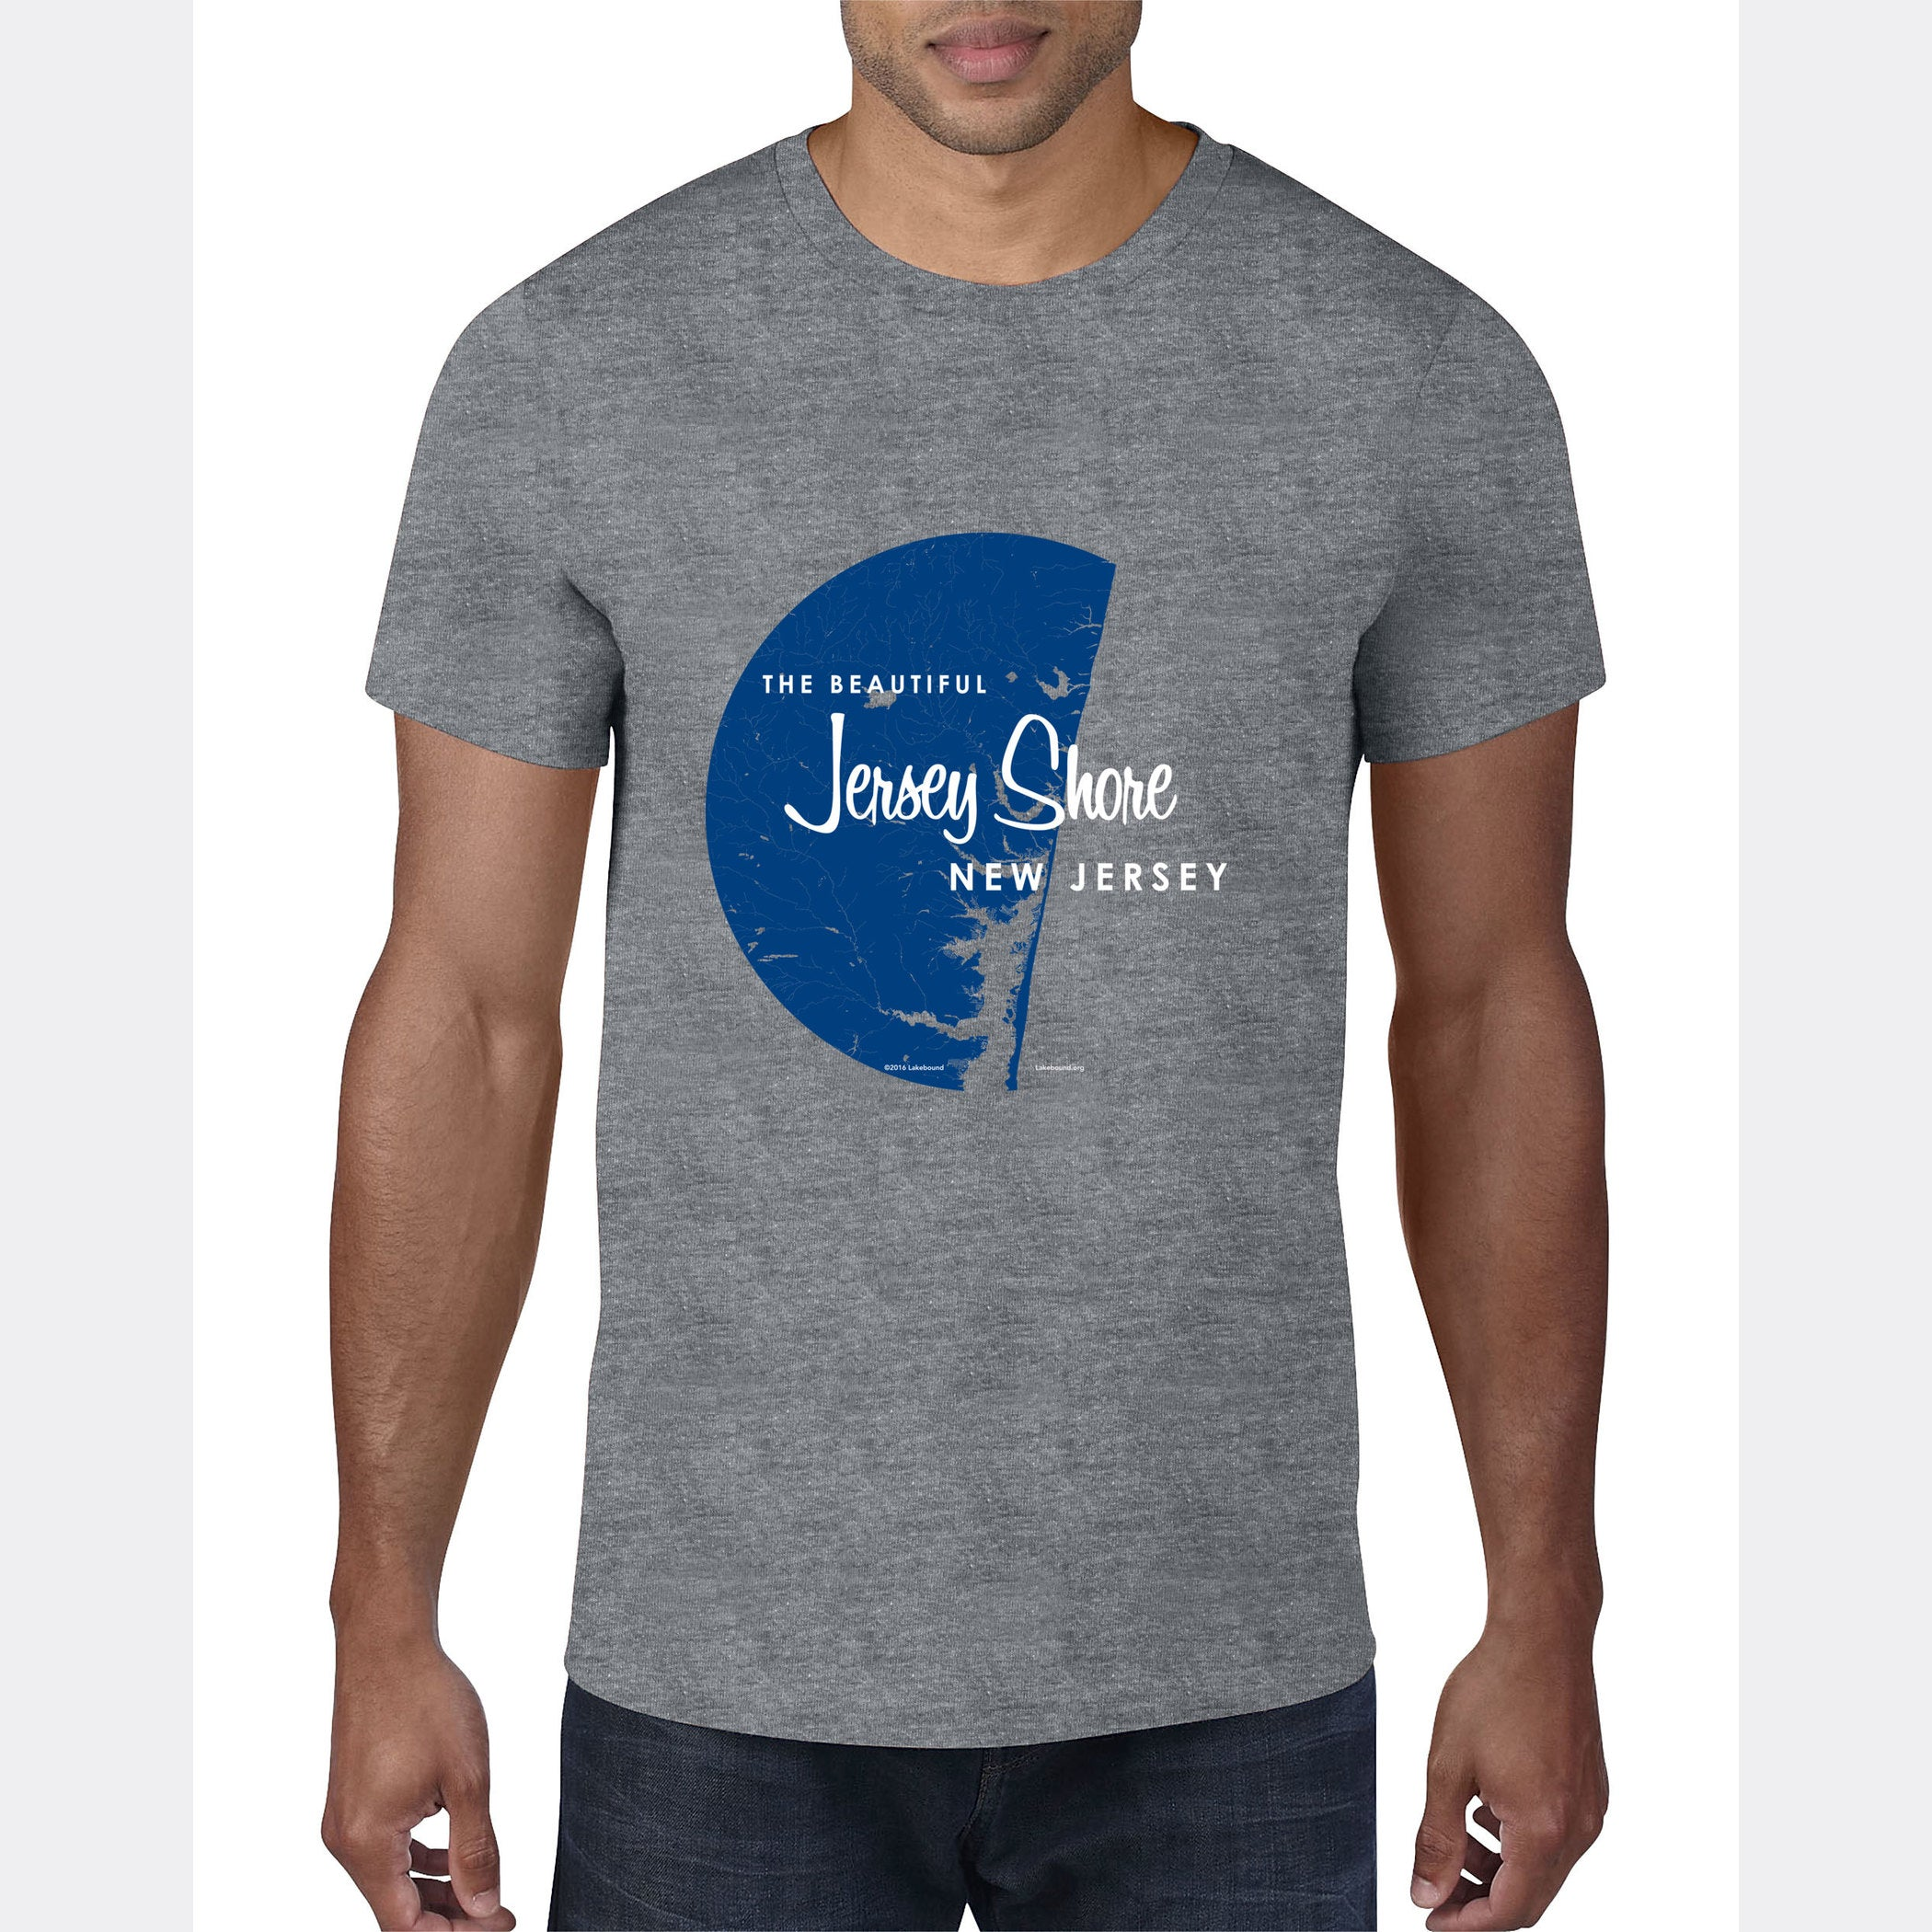 Jersey Shore New Jersey, T-Shirt